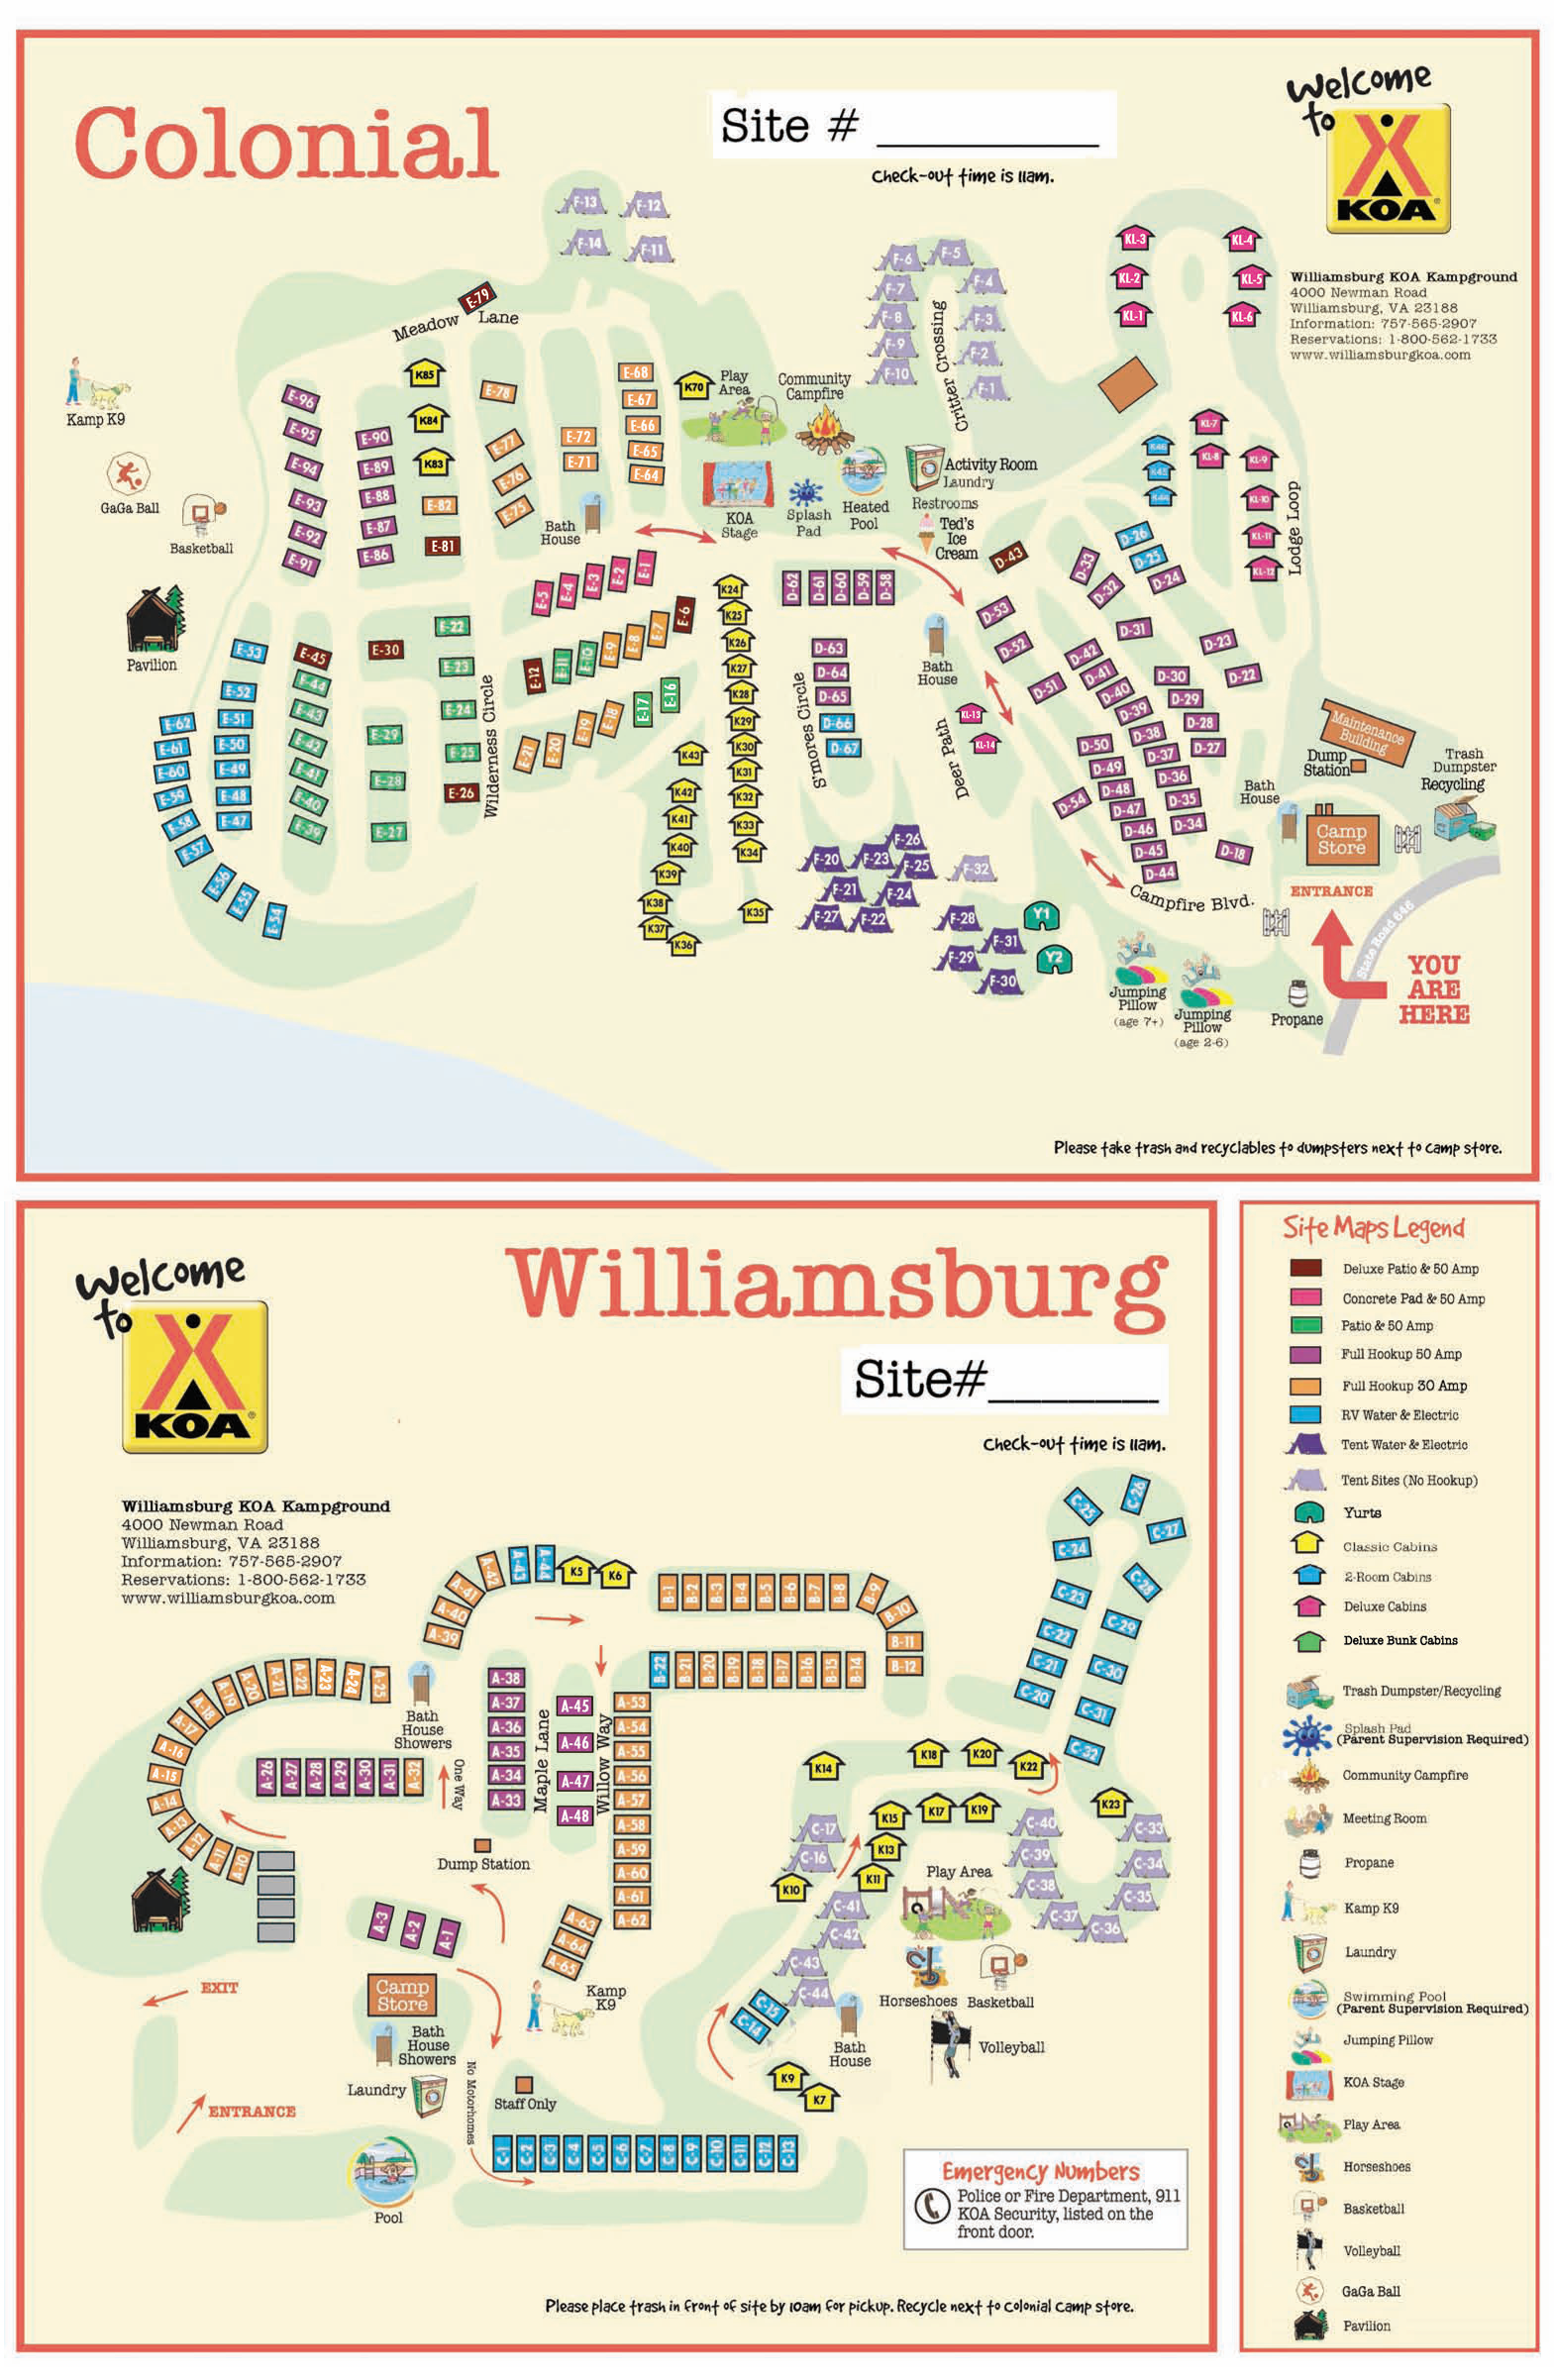 williamsburg-site-map